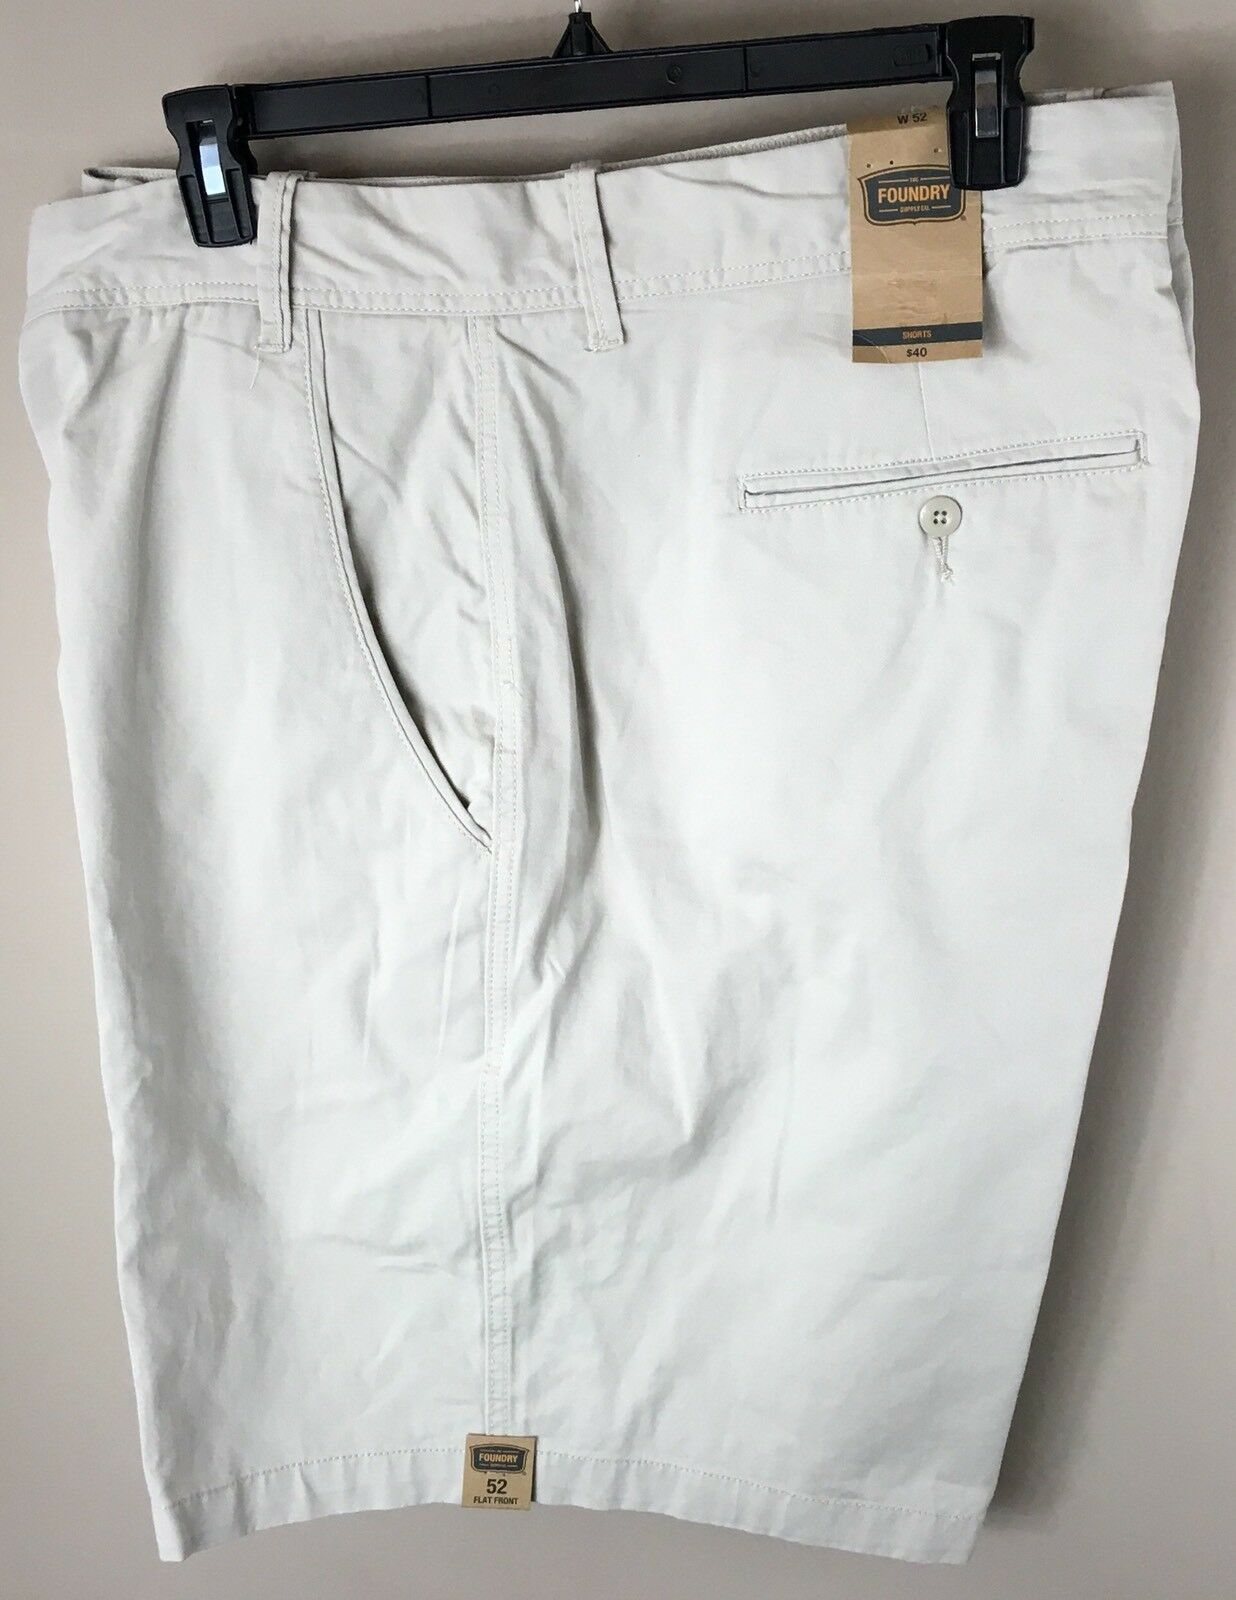 46 W Mens Shorts Foundry Supply Co. Classic Khaki 10